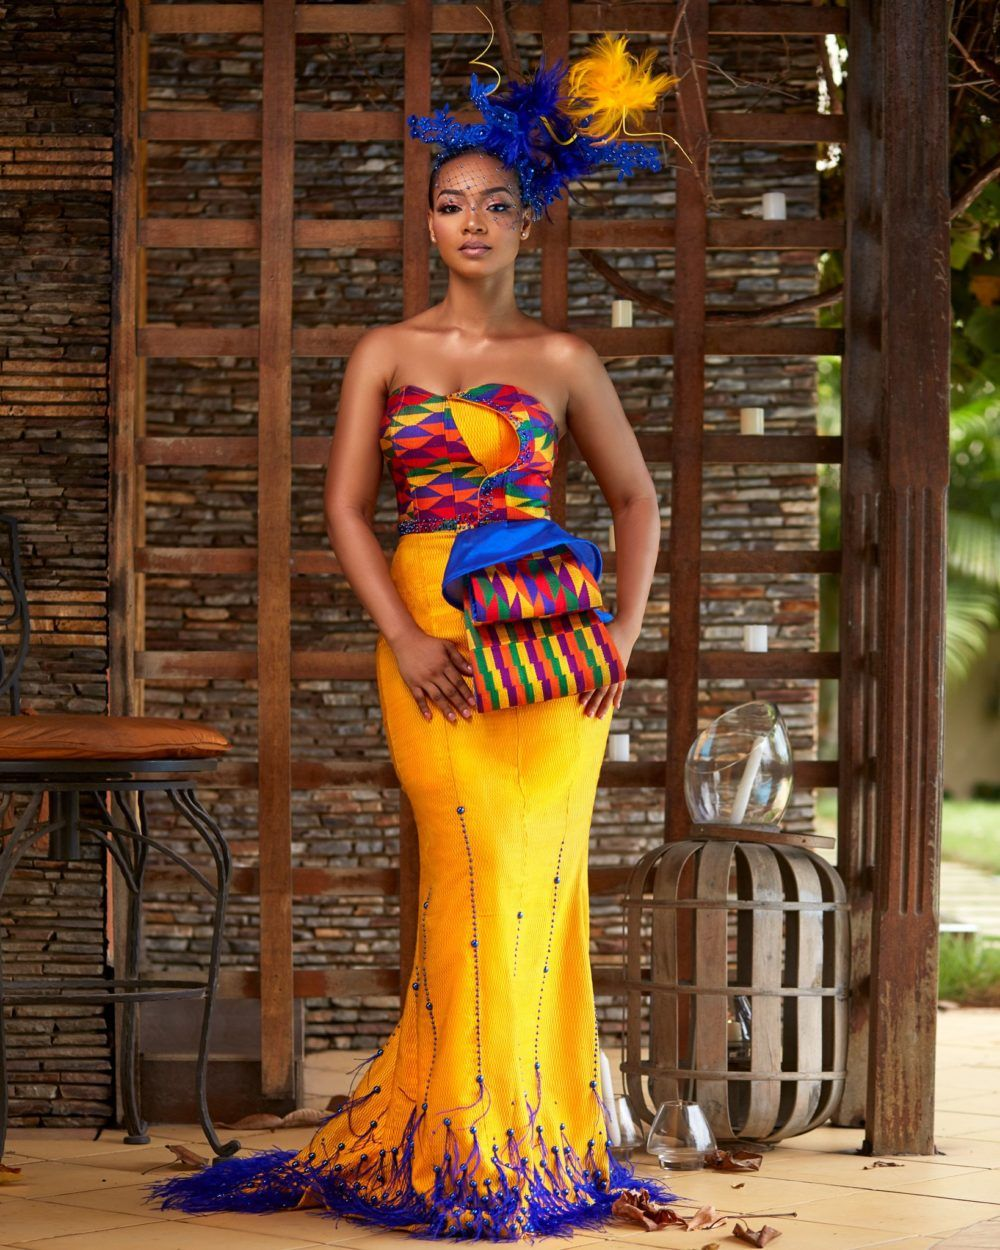 DESIGNER SPOTLIGHT: Sheelah Garbrah Gives The Kente Cloth A Stunning Makeover With Her Ohemaa Collection